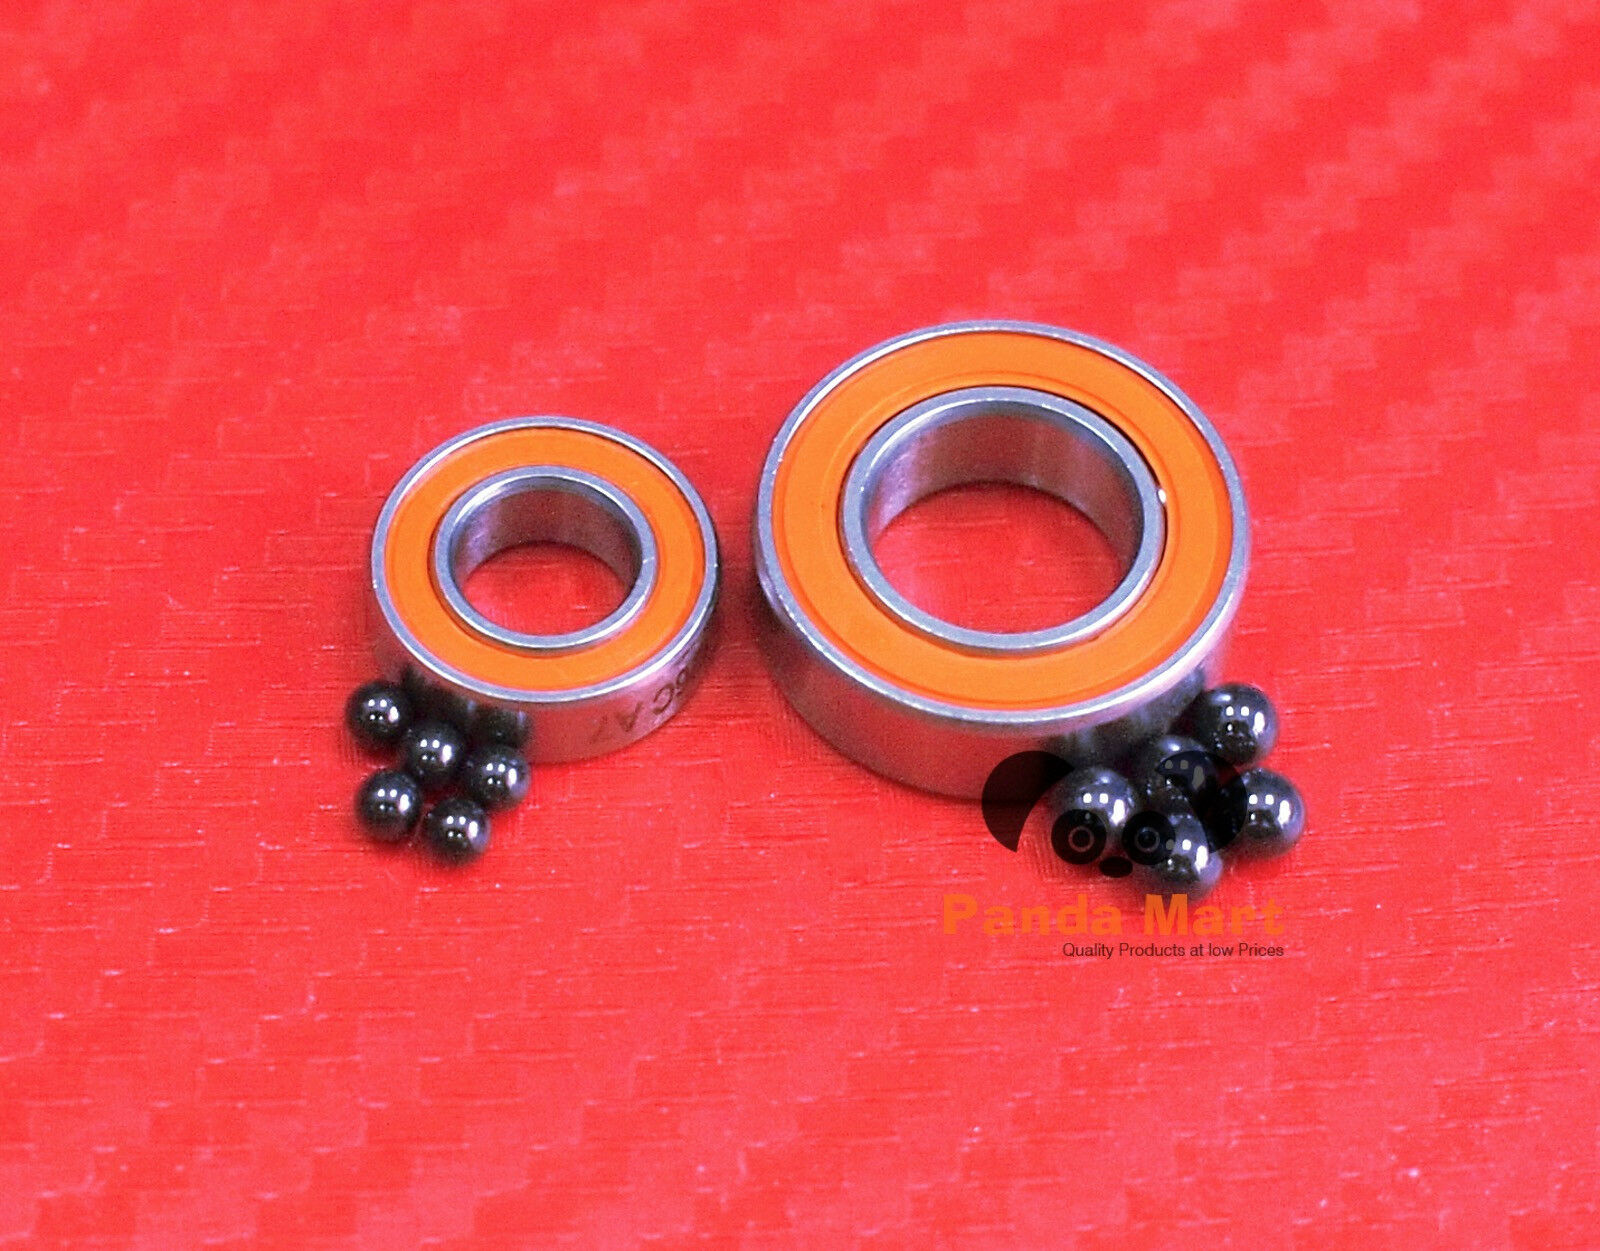 Hybrid  Ceramic Ball Bearings Fits QUANTUM TE 1161PT (COMPLETE) - ABEC-7 Bearing  high quality & fast shipping